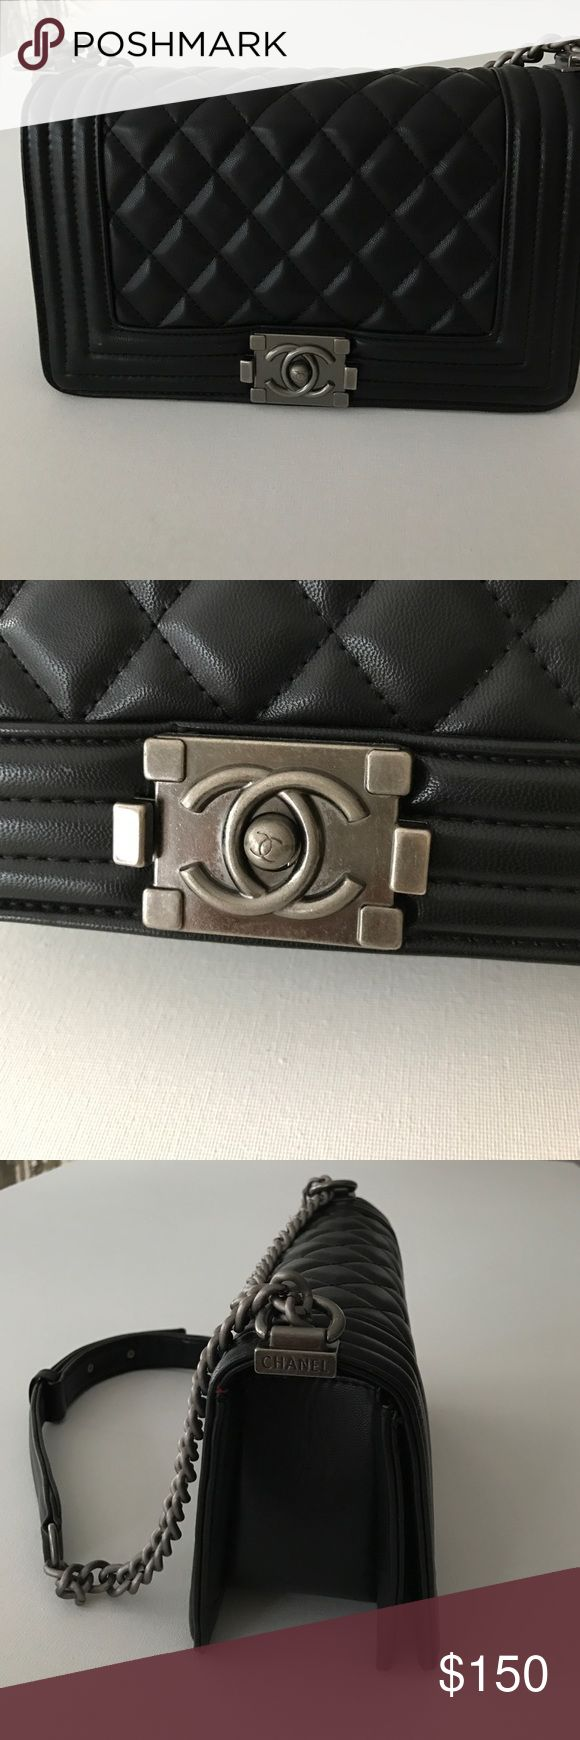 💥Chanel replica handbag💥 💥Chanel Purse. Excellent condition. Mirror Replica. No dust bag or box. 💥Firm price. Can be used as cross body or shoulder bag. I am moving out west & editing my collection. Serious offers only no trades. Please see my closet stats for my fast shipping and high credentials.🎀 CHANEL Bags Crossbody Bags